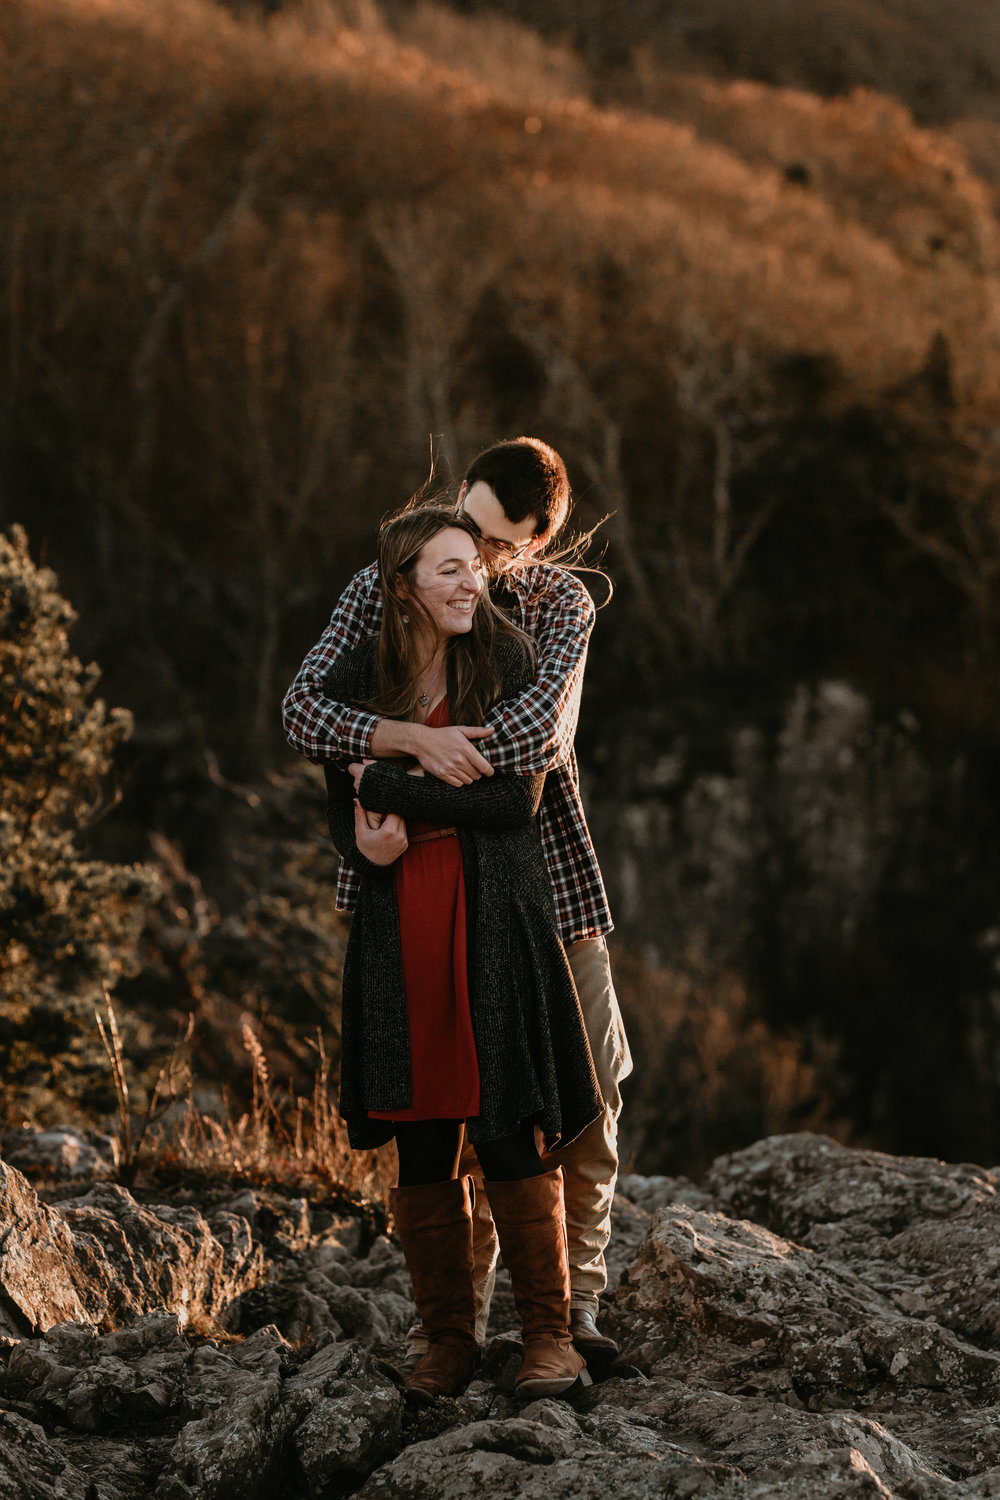 nicole-daacke-photography-shenandoah-national-park-adventure-engagement-session-with-fall-foliage-shenandoah-elopement-photographer-engagement-photos-in-virginia-charlottesville-national-park-adventure-elopement-photographer-3937.jpg